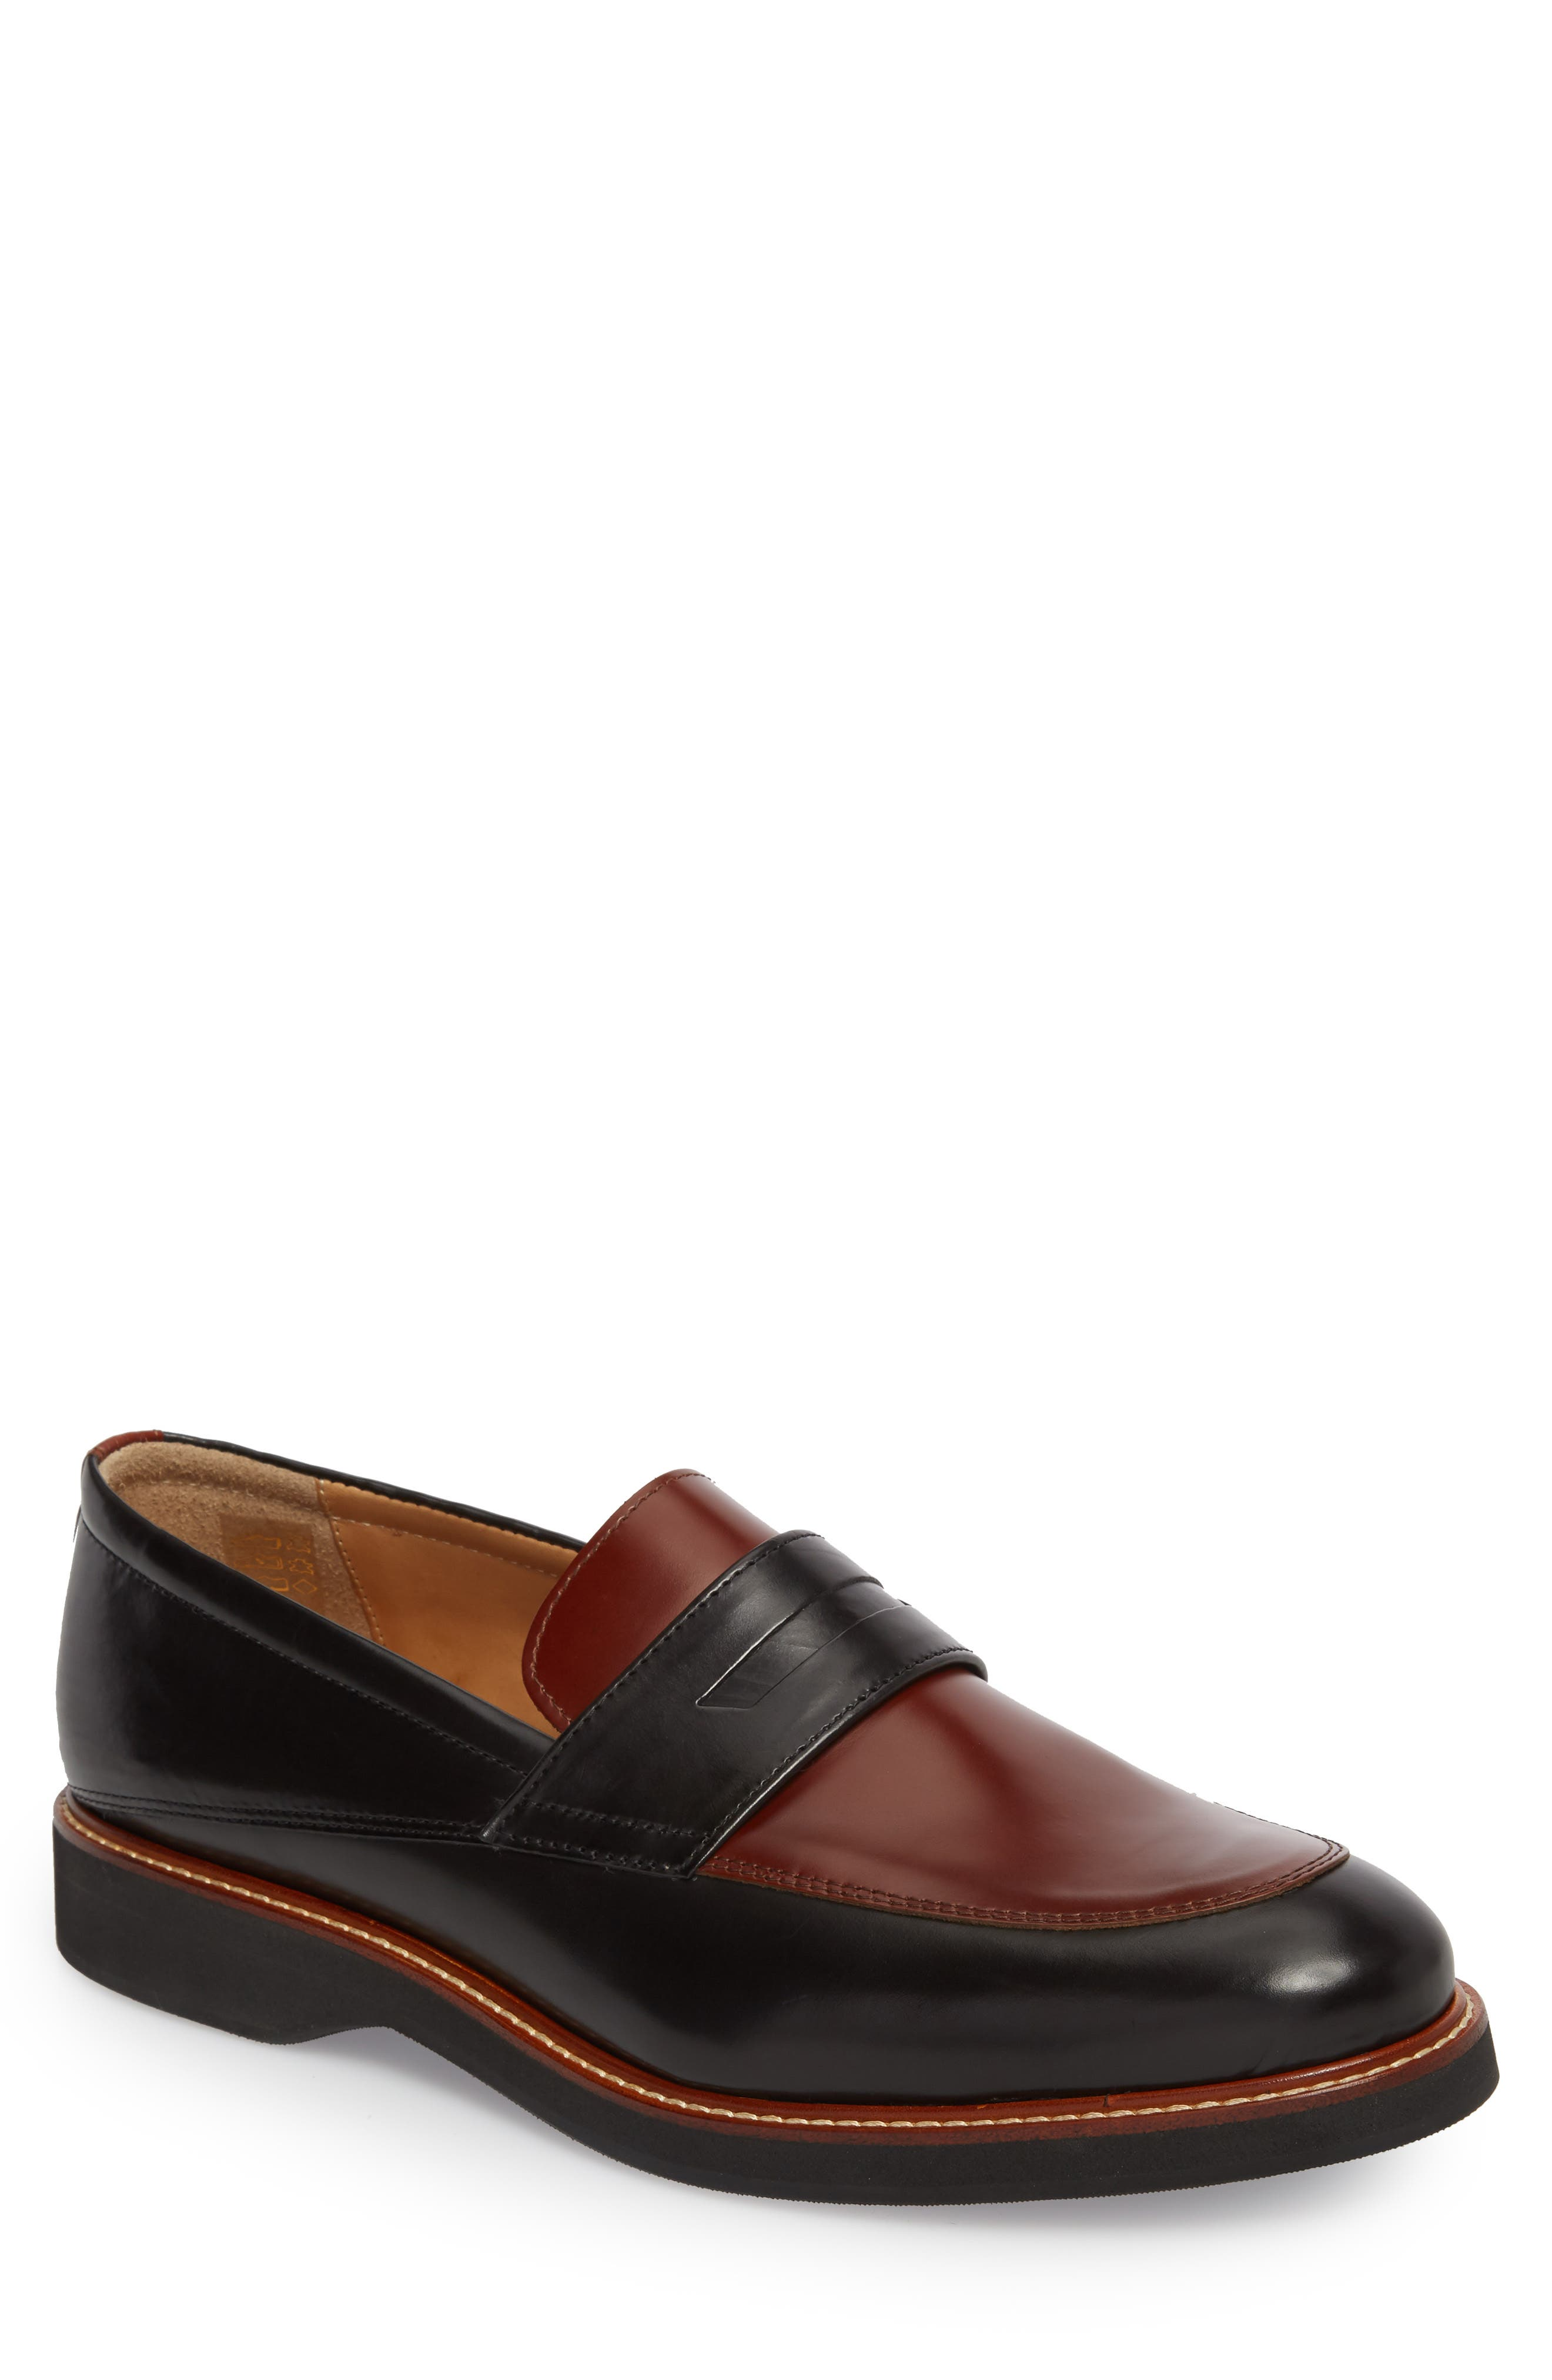 Main Image - WANT LES ESSENTIELS Marcus Penny Loafer (Men)